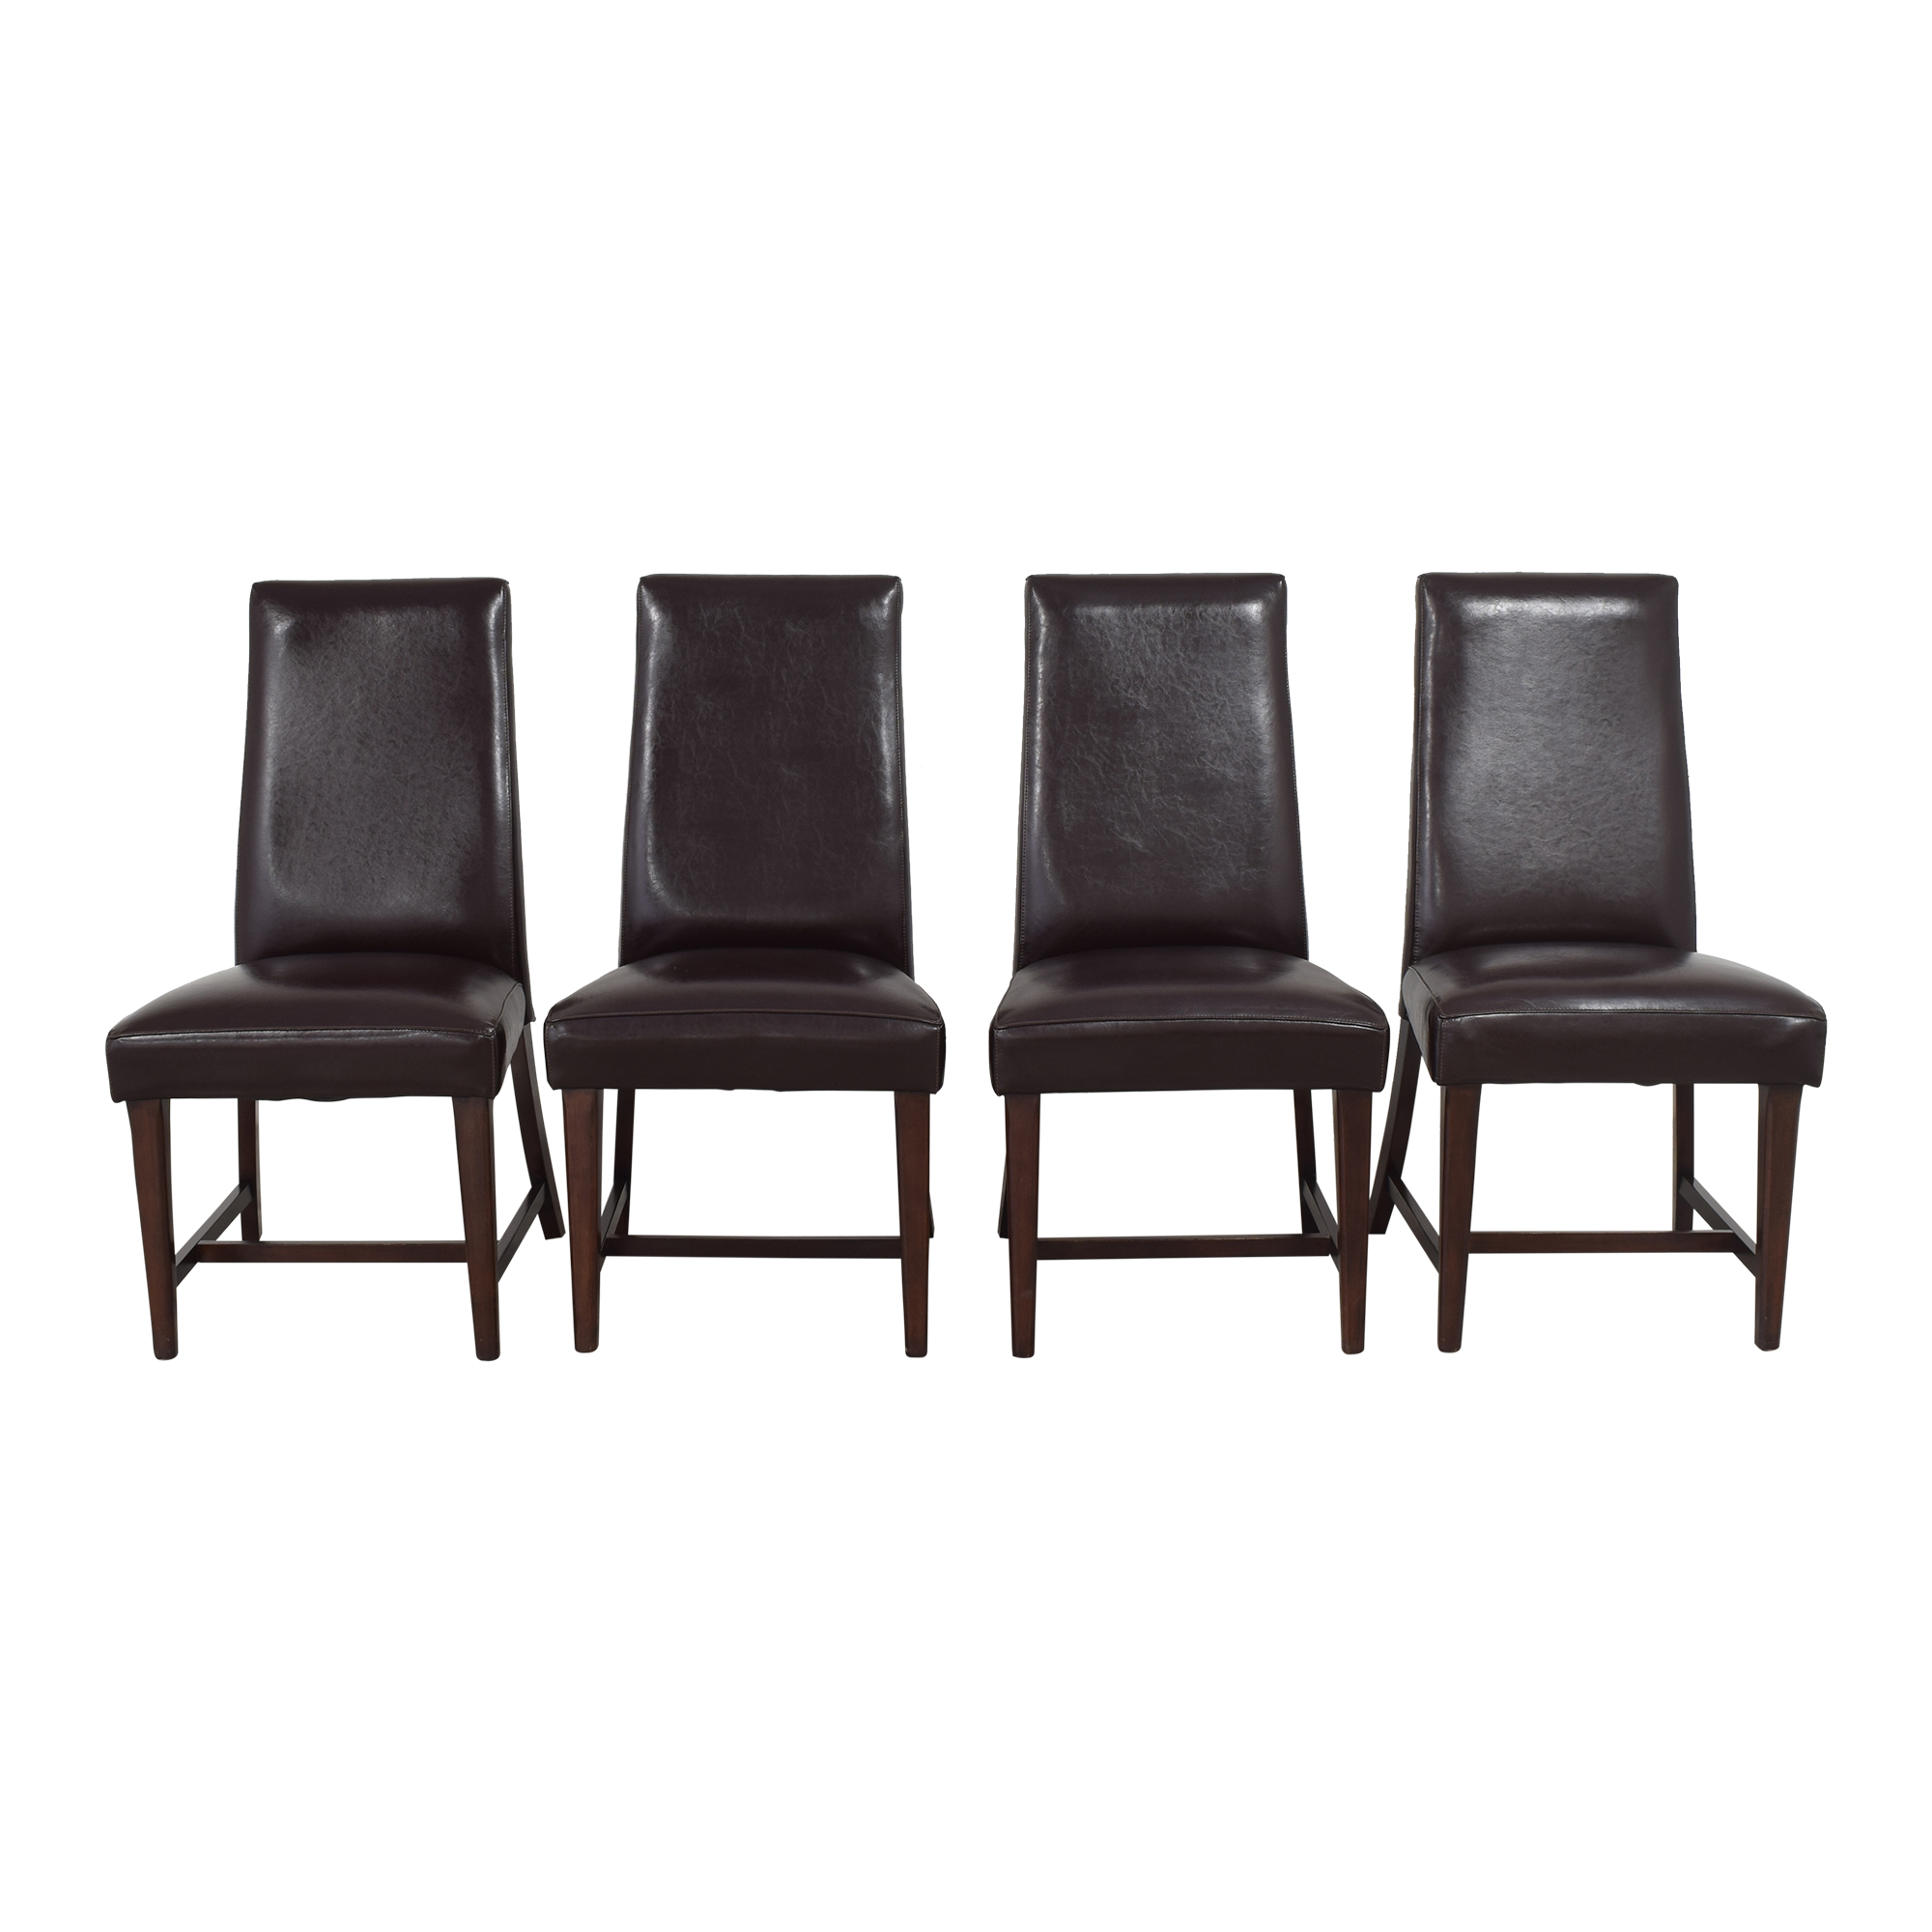 Shermag Shermag High Back Dining Chairs Chairs